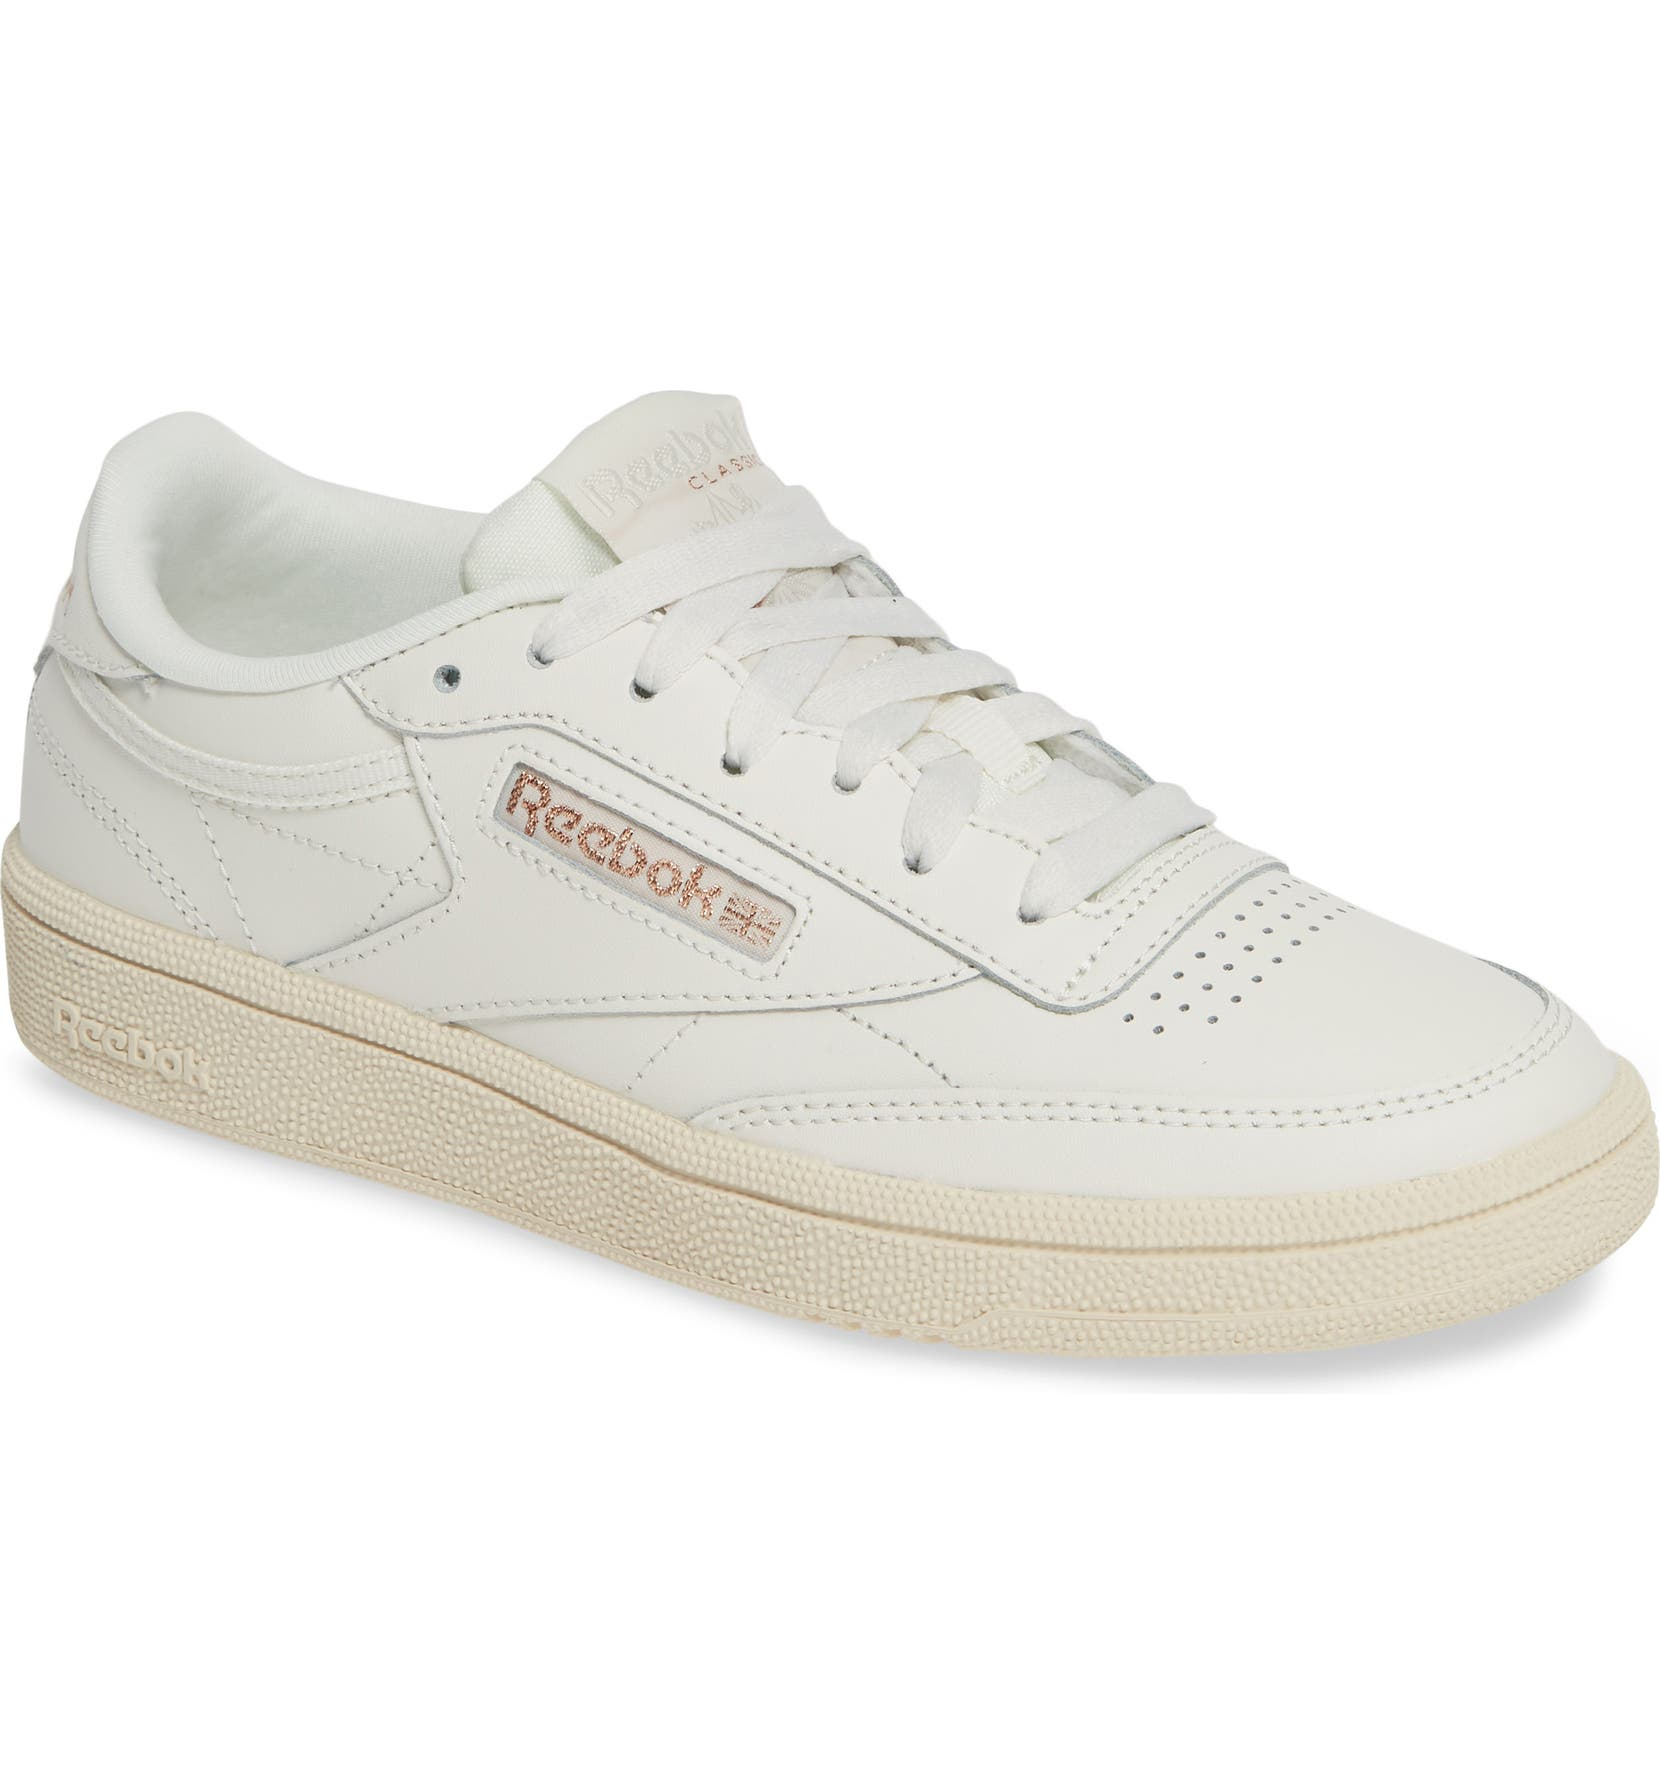 974161c5a34fb6 Reebok Club C 85 Sneaker (Women)